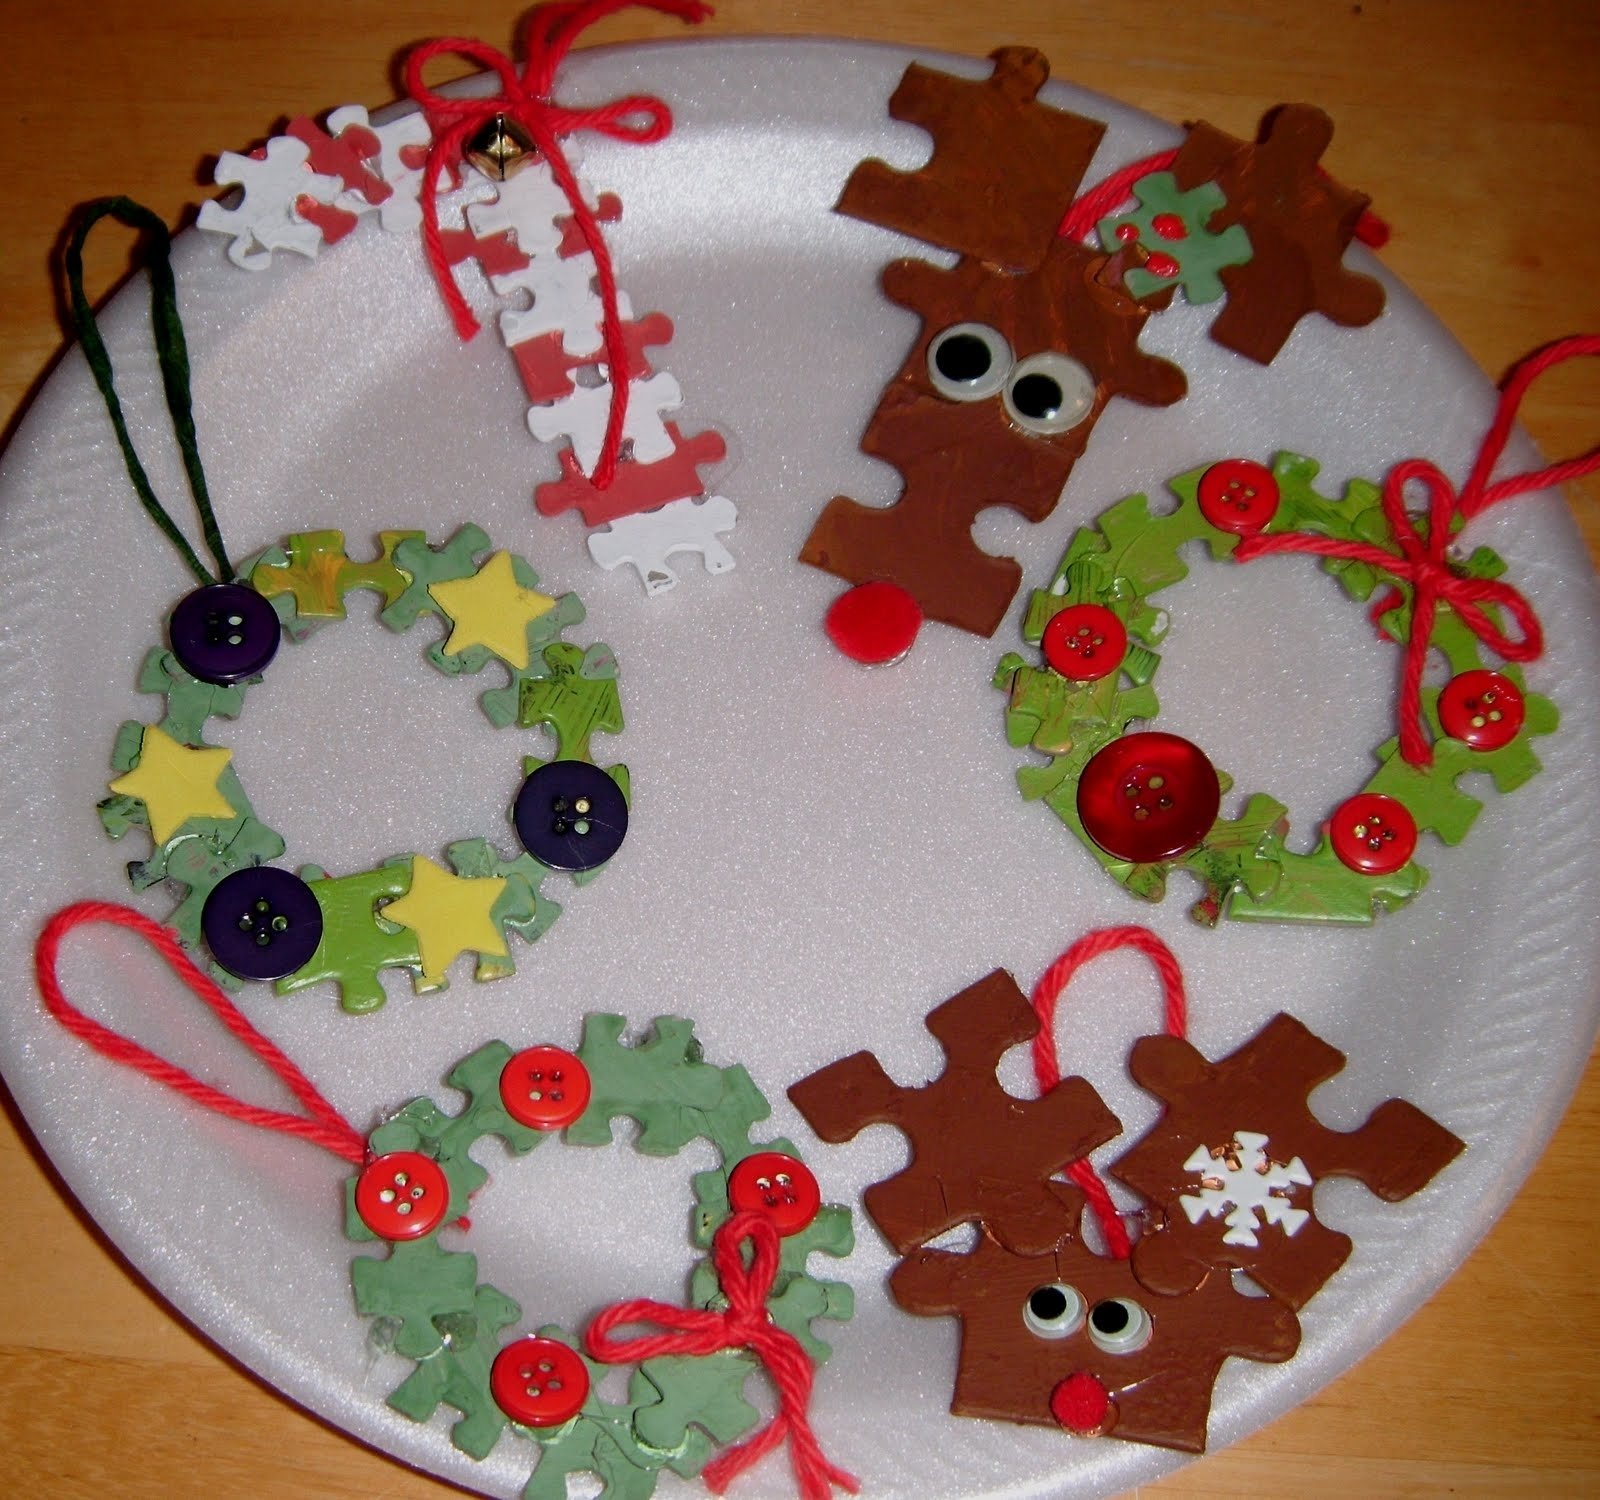 10 Gorgeous Christmas Ornament Craft Ideas For Kids 7 easy diy homemade christmas ornaments for kids 2021